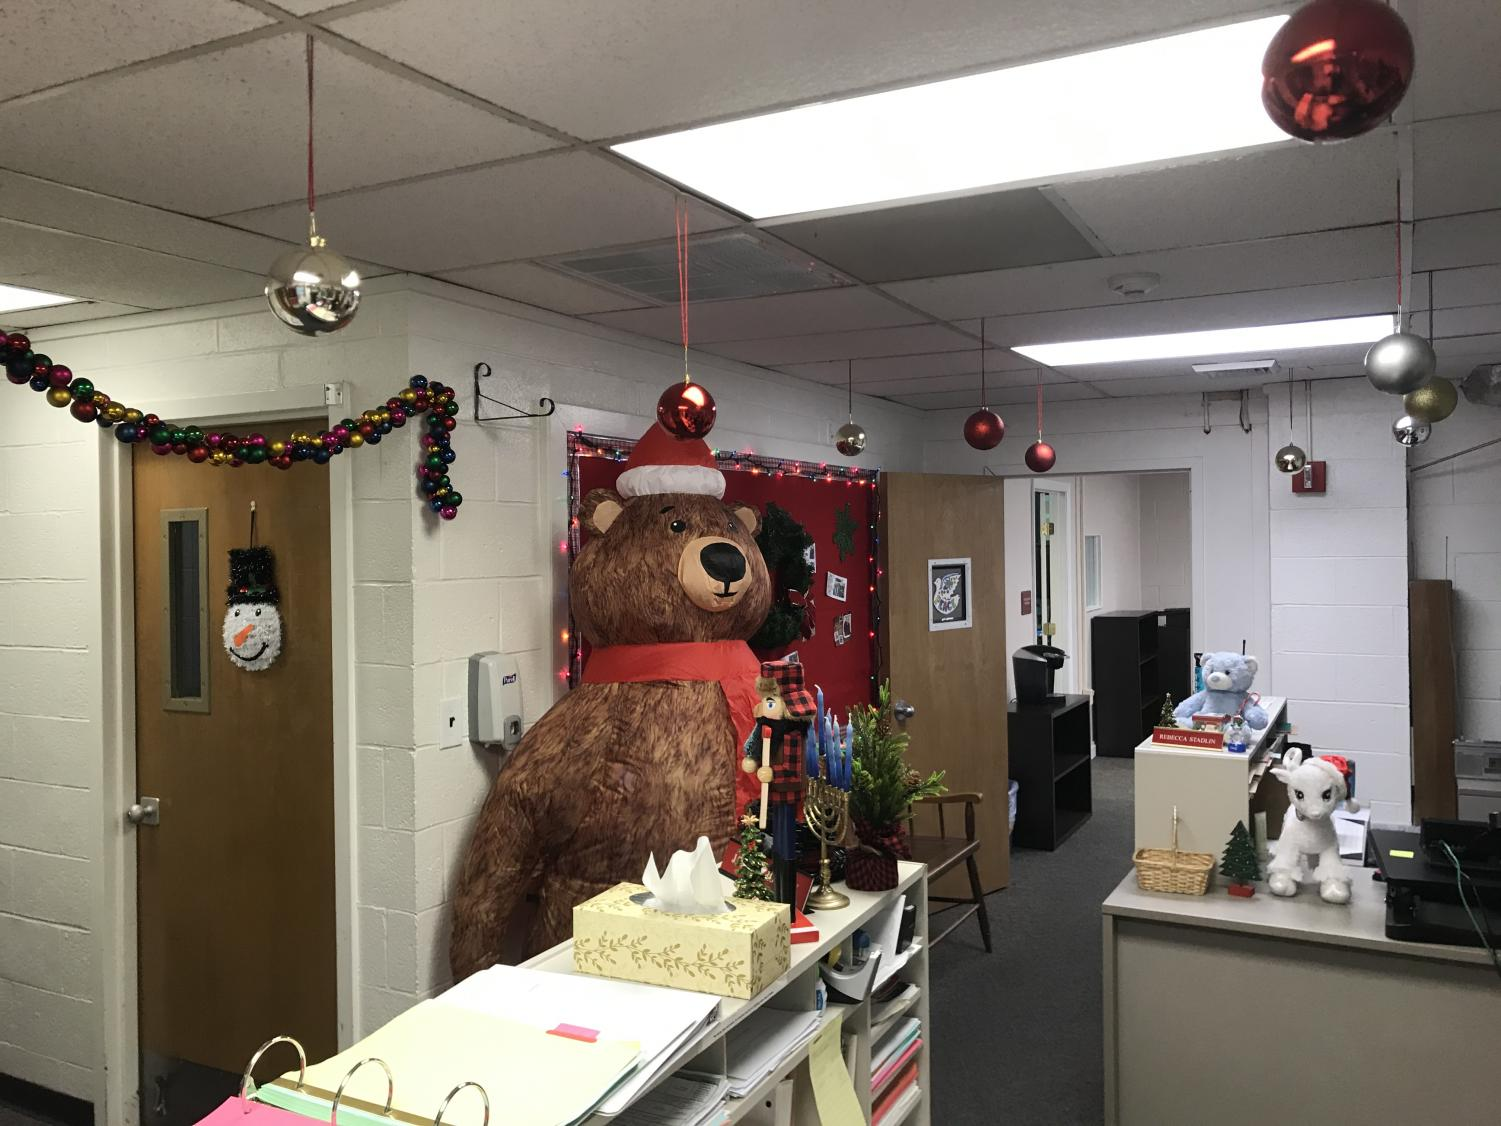 The+inflatable+bear+in+the+attendance+office.+